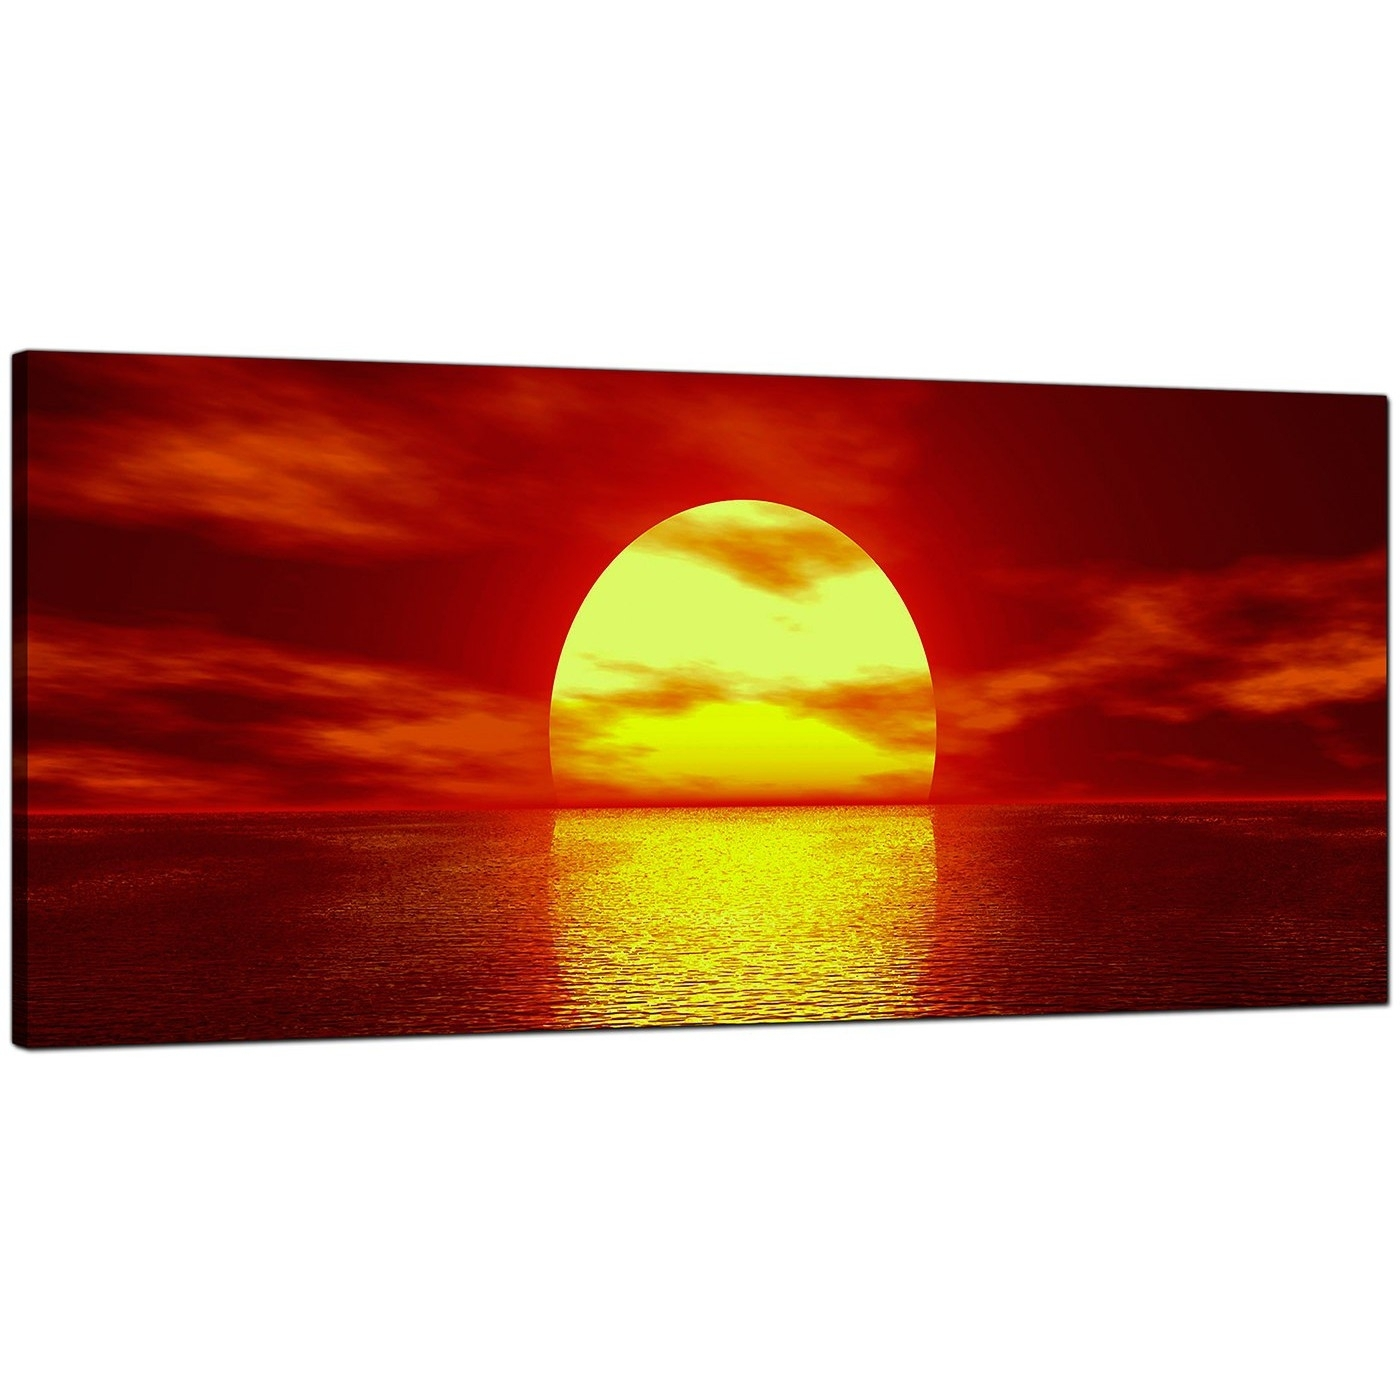 Modern Red Canvas Wall Art Of A Sea Sunset With Regard To Best And Newest Red Canvas Wall Art (View 12 of 15)